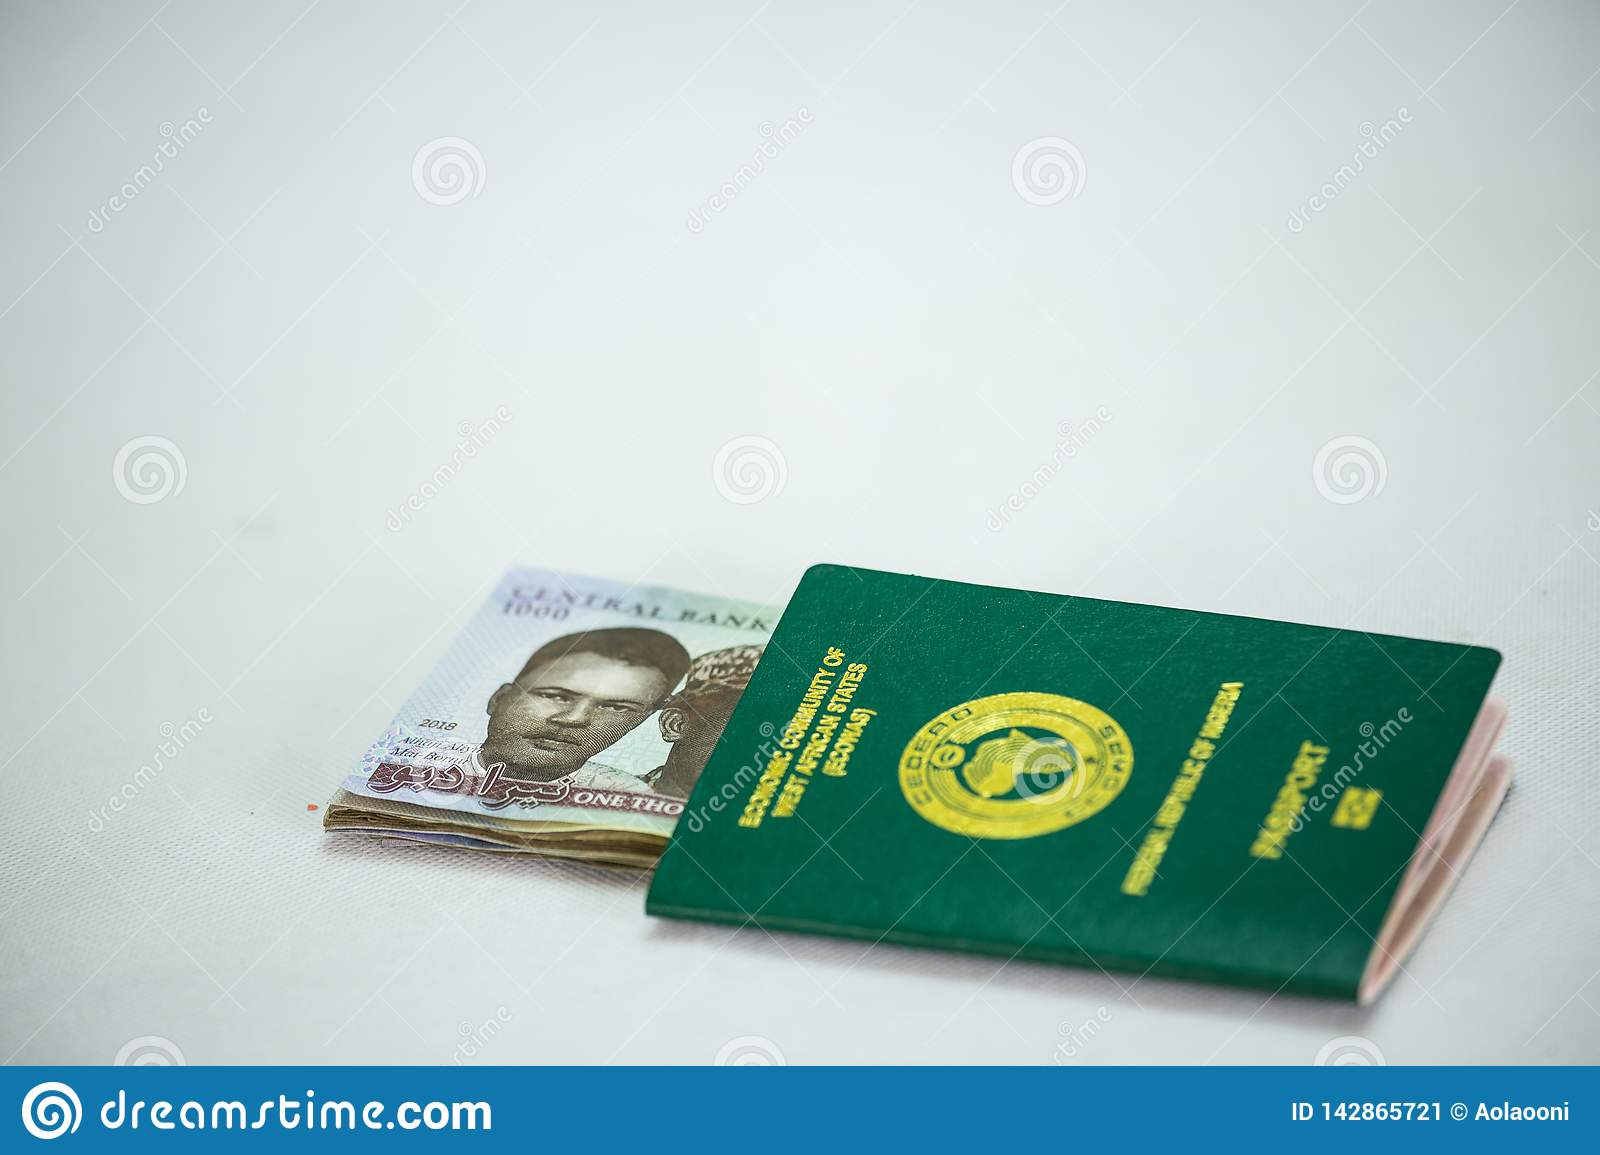 Ecowas Nigeria International Passport with 1000 naira currency notes